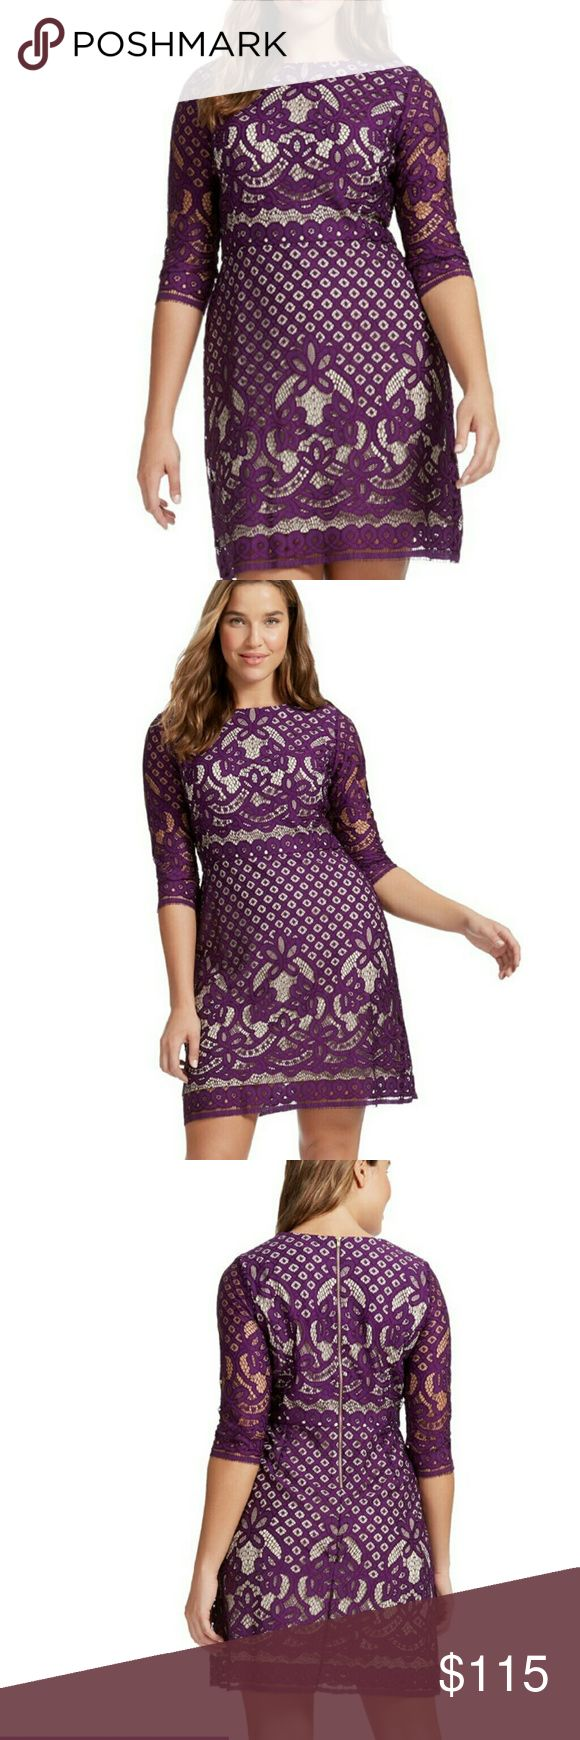 Gabby Skye - Purple Lace Dress Lace shift dress with scoop neck and 3/4 sleeves, no stretch, exposed back zip, set in Waist, lined. Gabby Skye takes feminine lace to a new level with this ultra-feminine shift dress and Vivid purple. A fitted silhouette and gentle flare make it a flattering favorite for work or weekend occasions. Nylon / Cotton 7550 Gabby Skye Dresses Midi